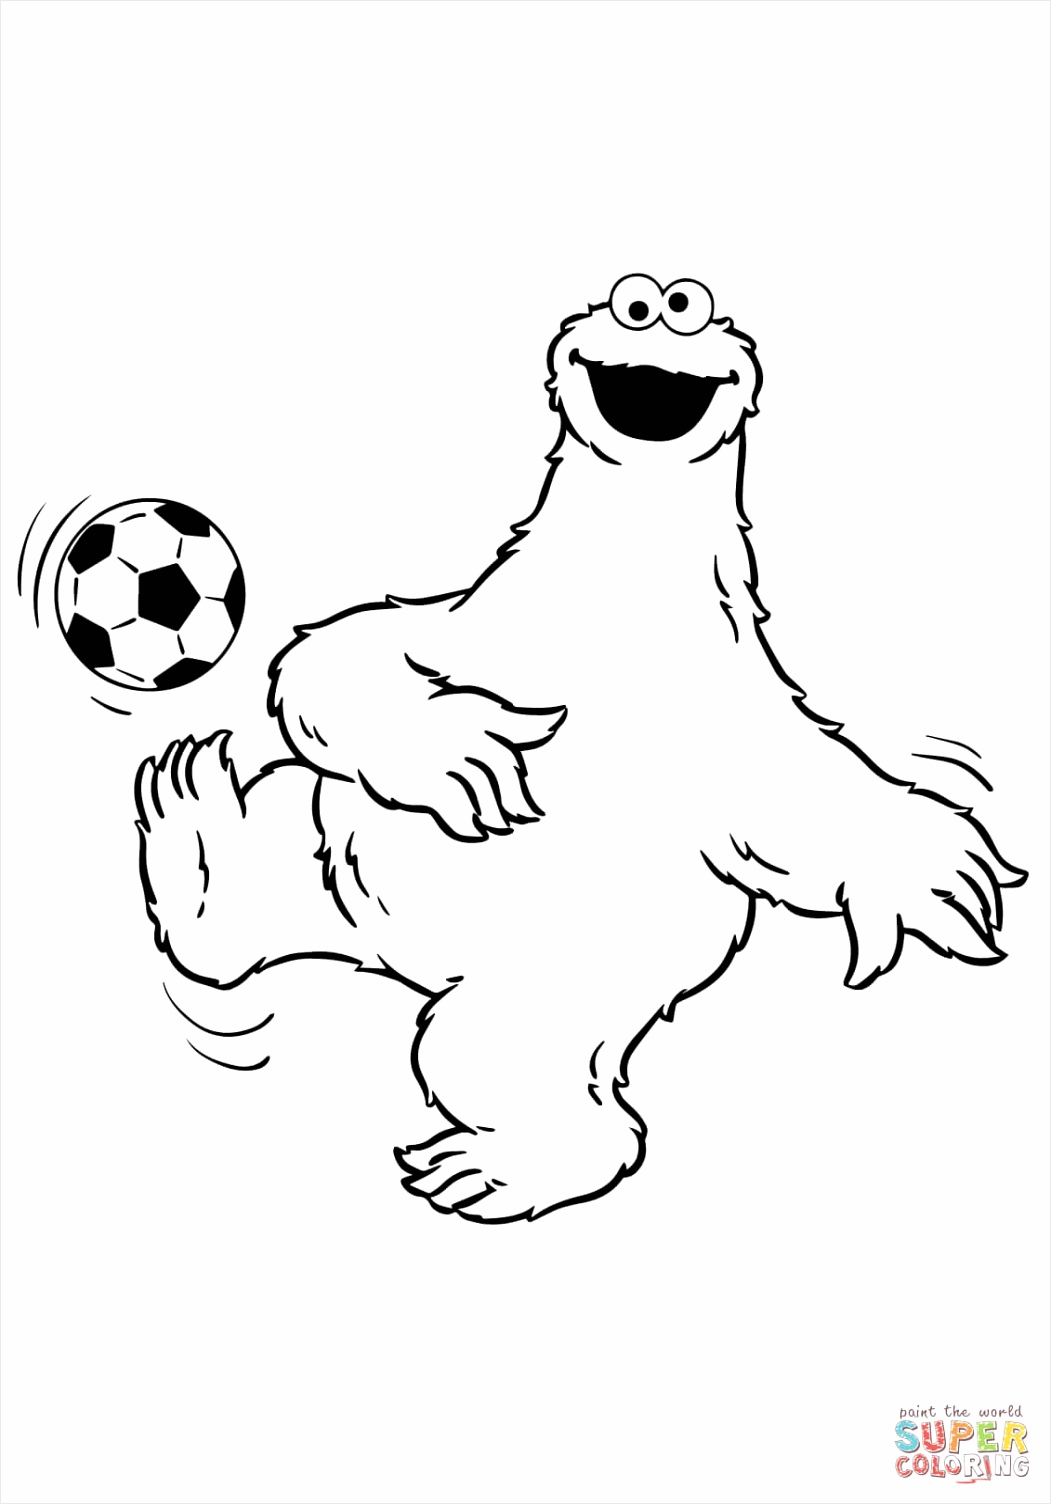 cookie monster plays soccer coloring page utotp